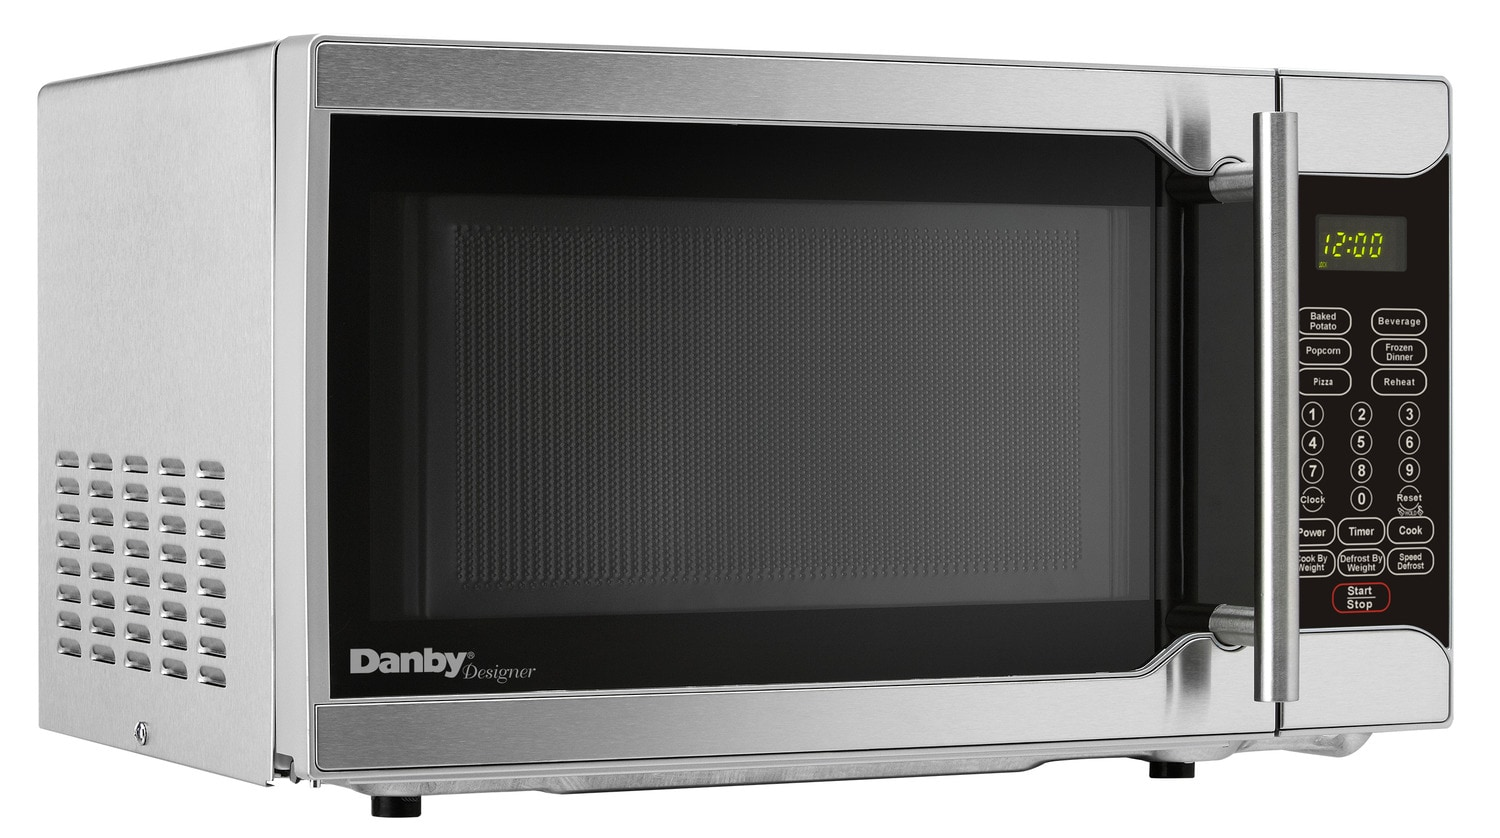 Cooking Products - Danby Stainless Steel Countertop Microwave (0.7 Cu. Ft.) - DMW07A2SSDD